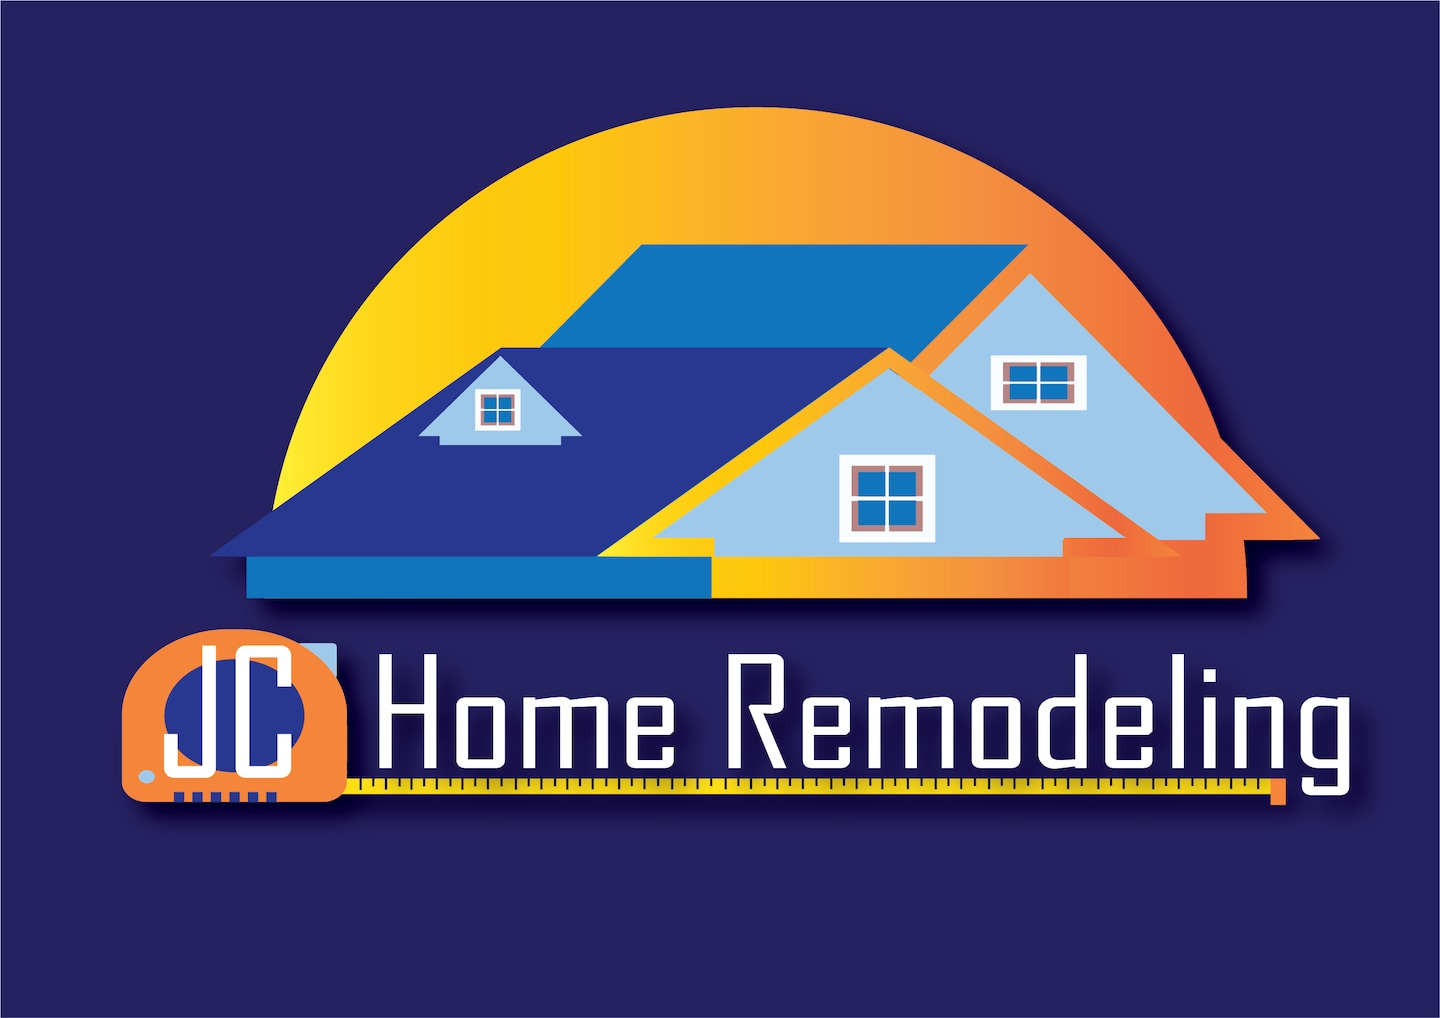 JC Home Remodeling